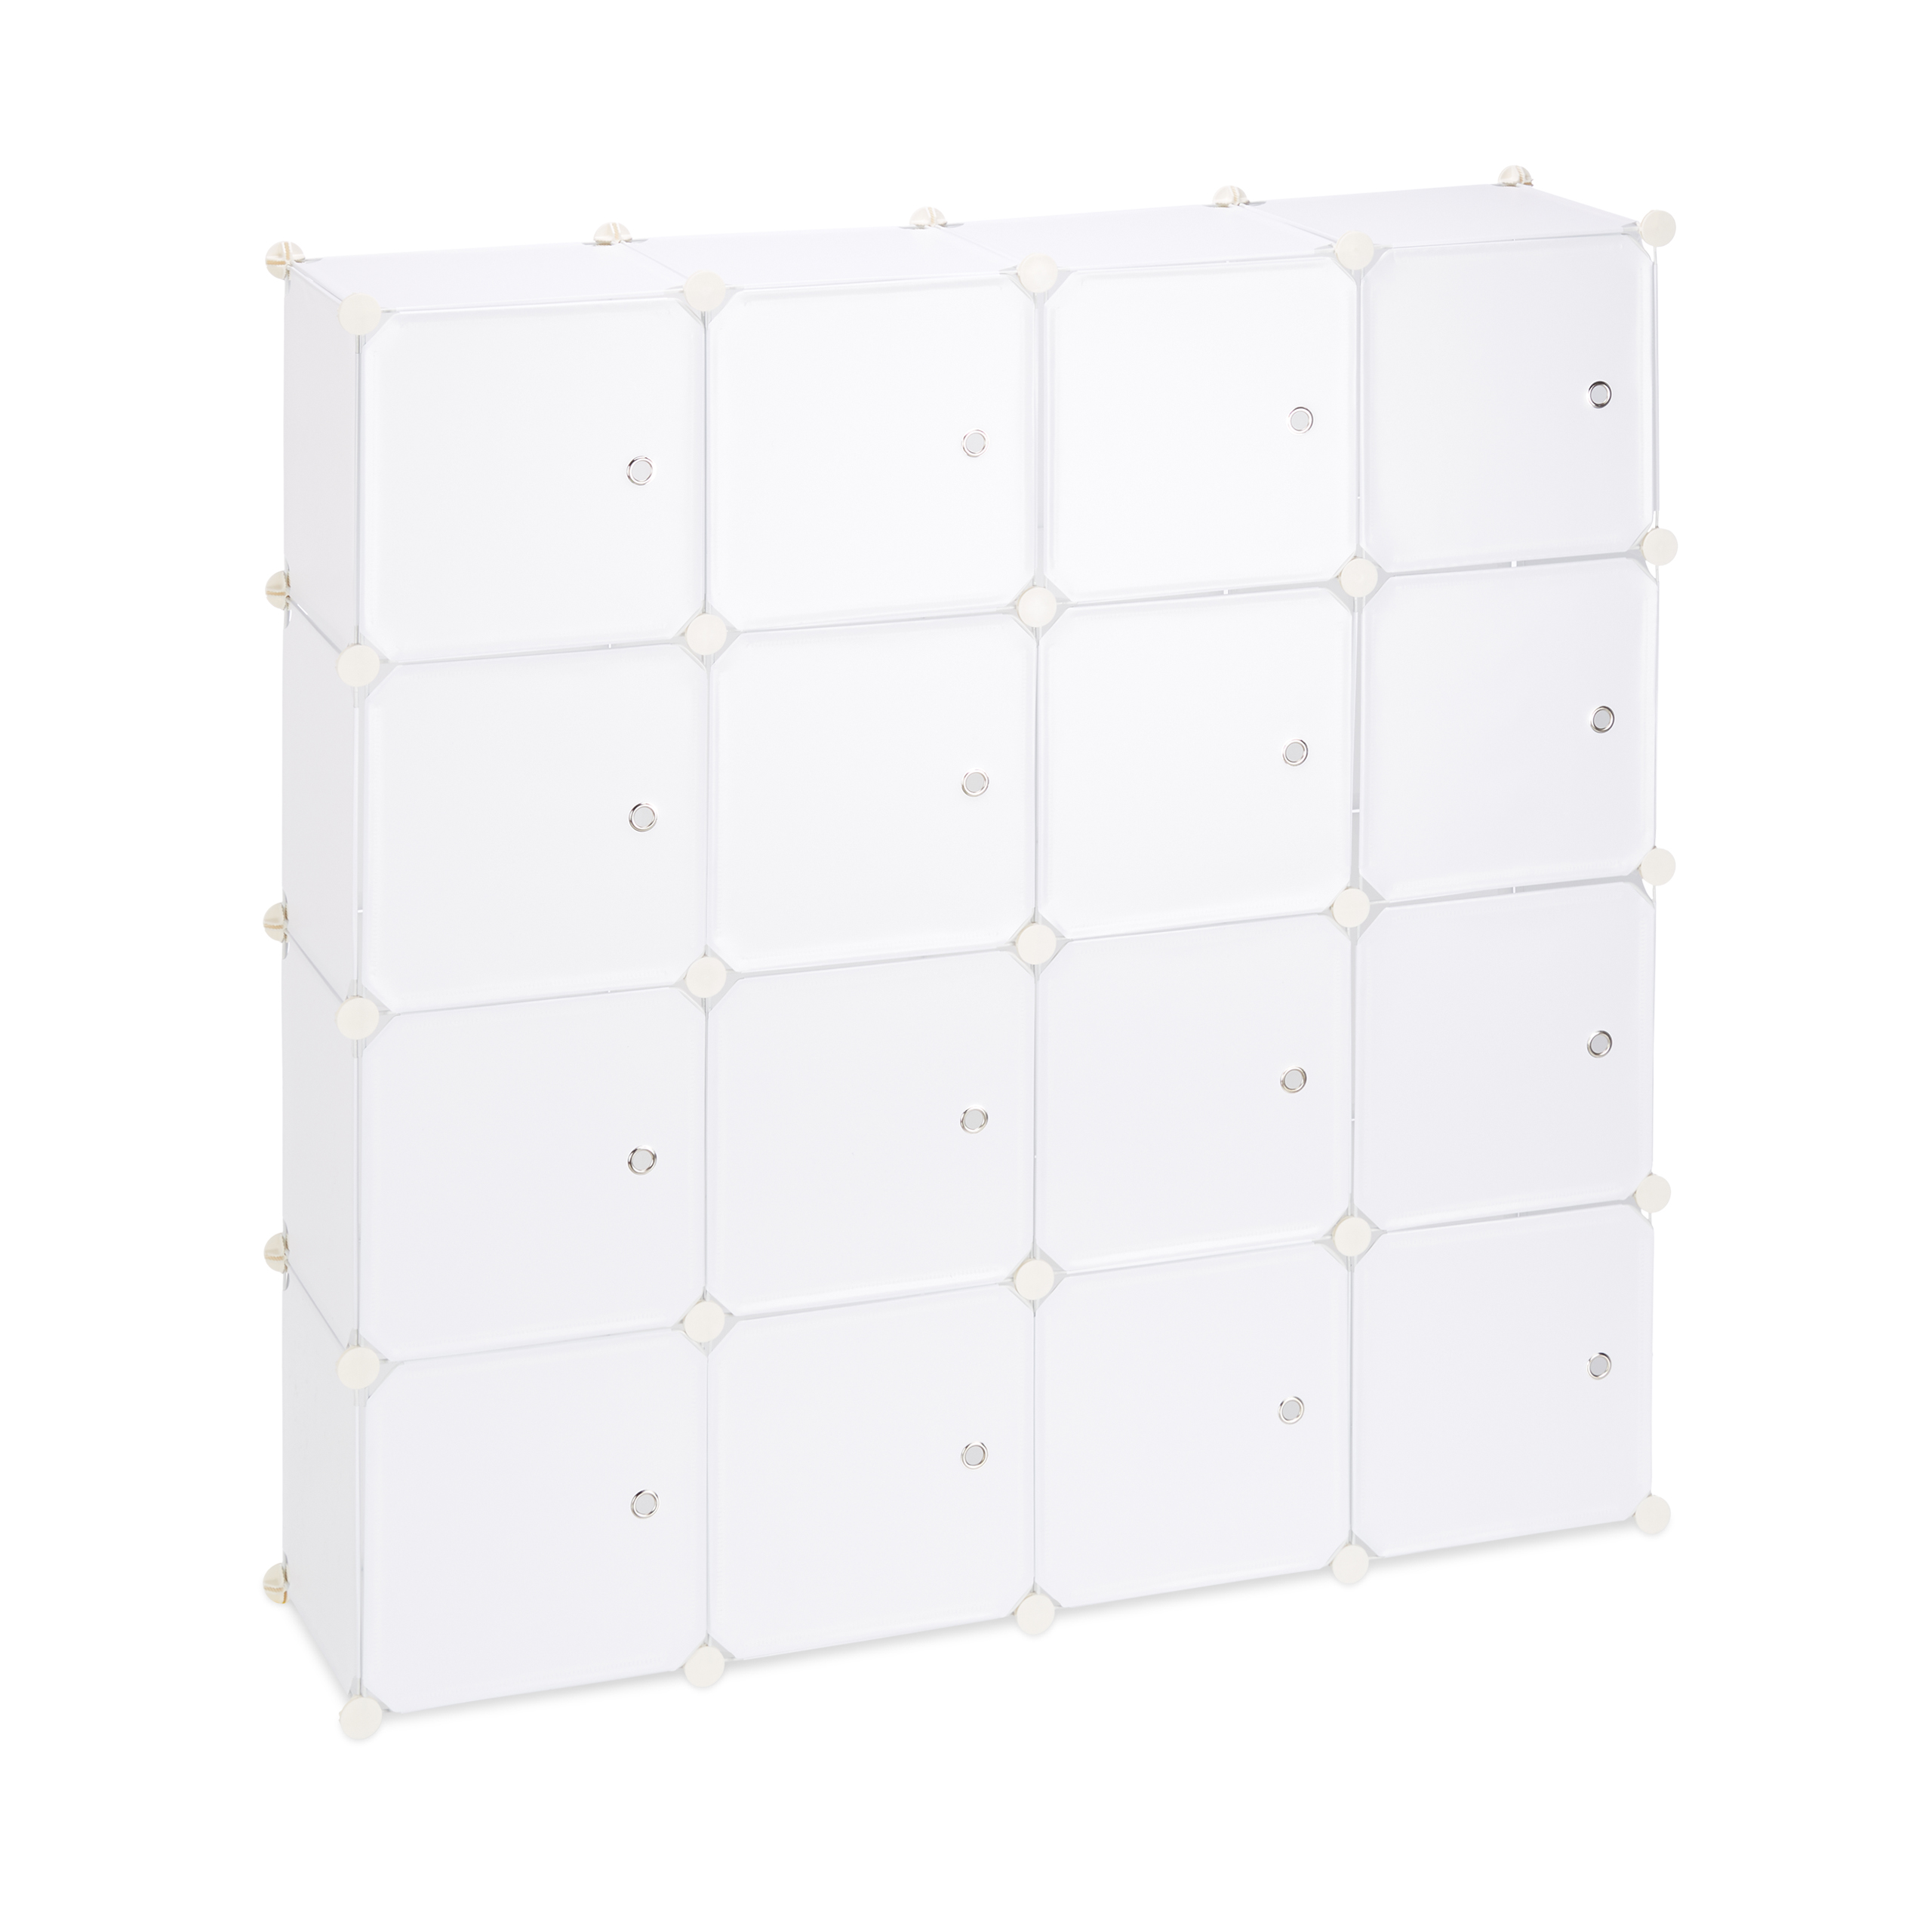 Boltless-Plastic-with-16-Compartments-Shelving-System-DIY-with-doors-Plastic-Cabinet thumbnail 18